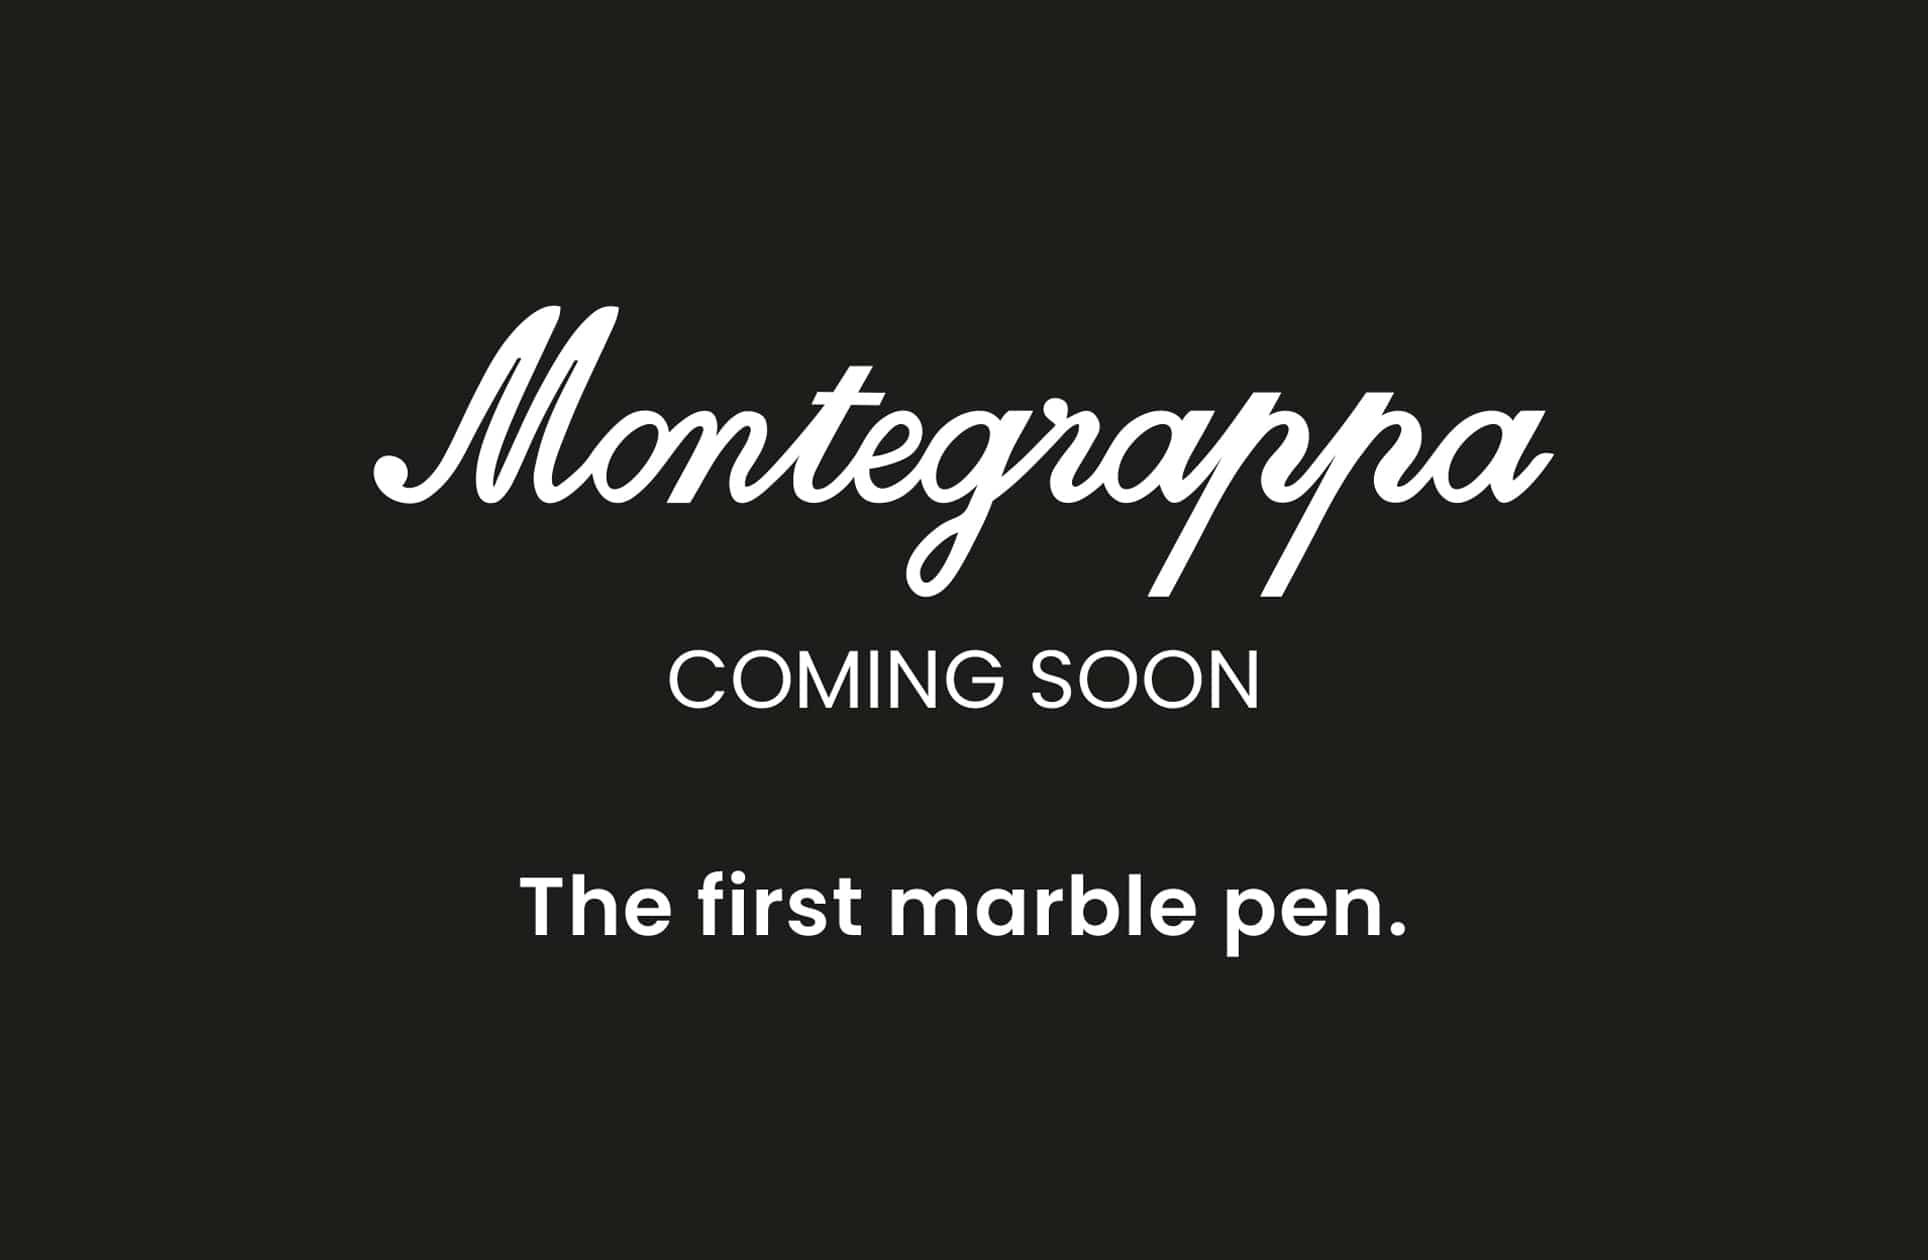 Penne Montegrappa